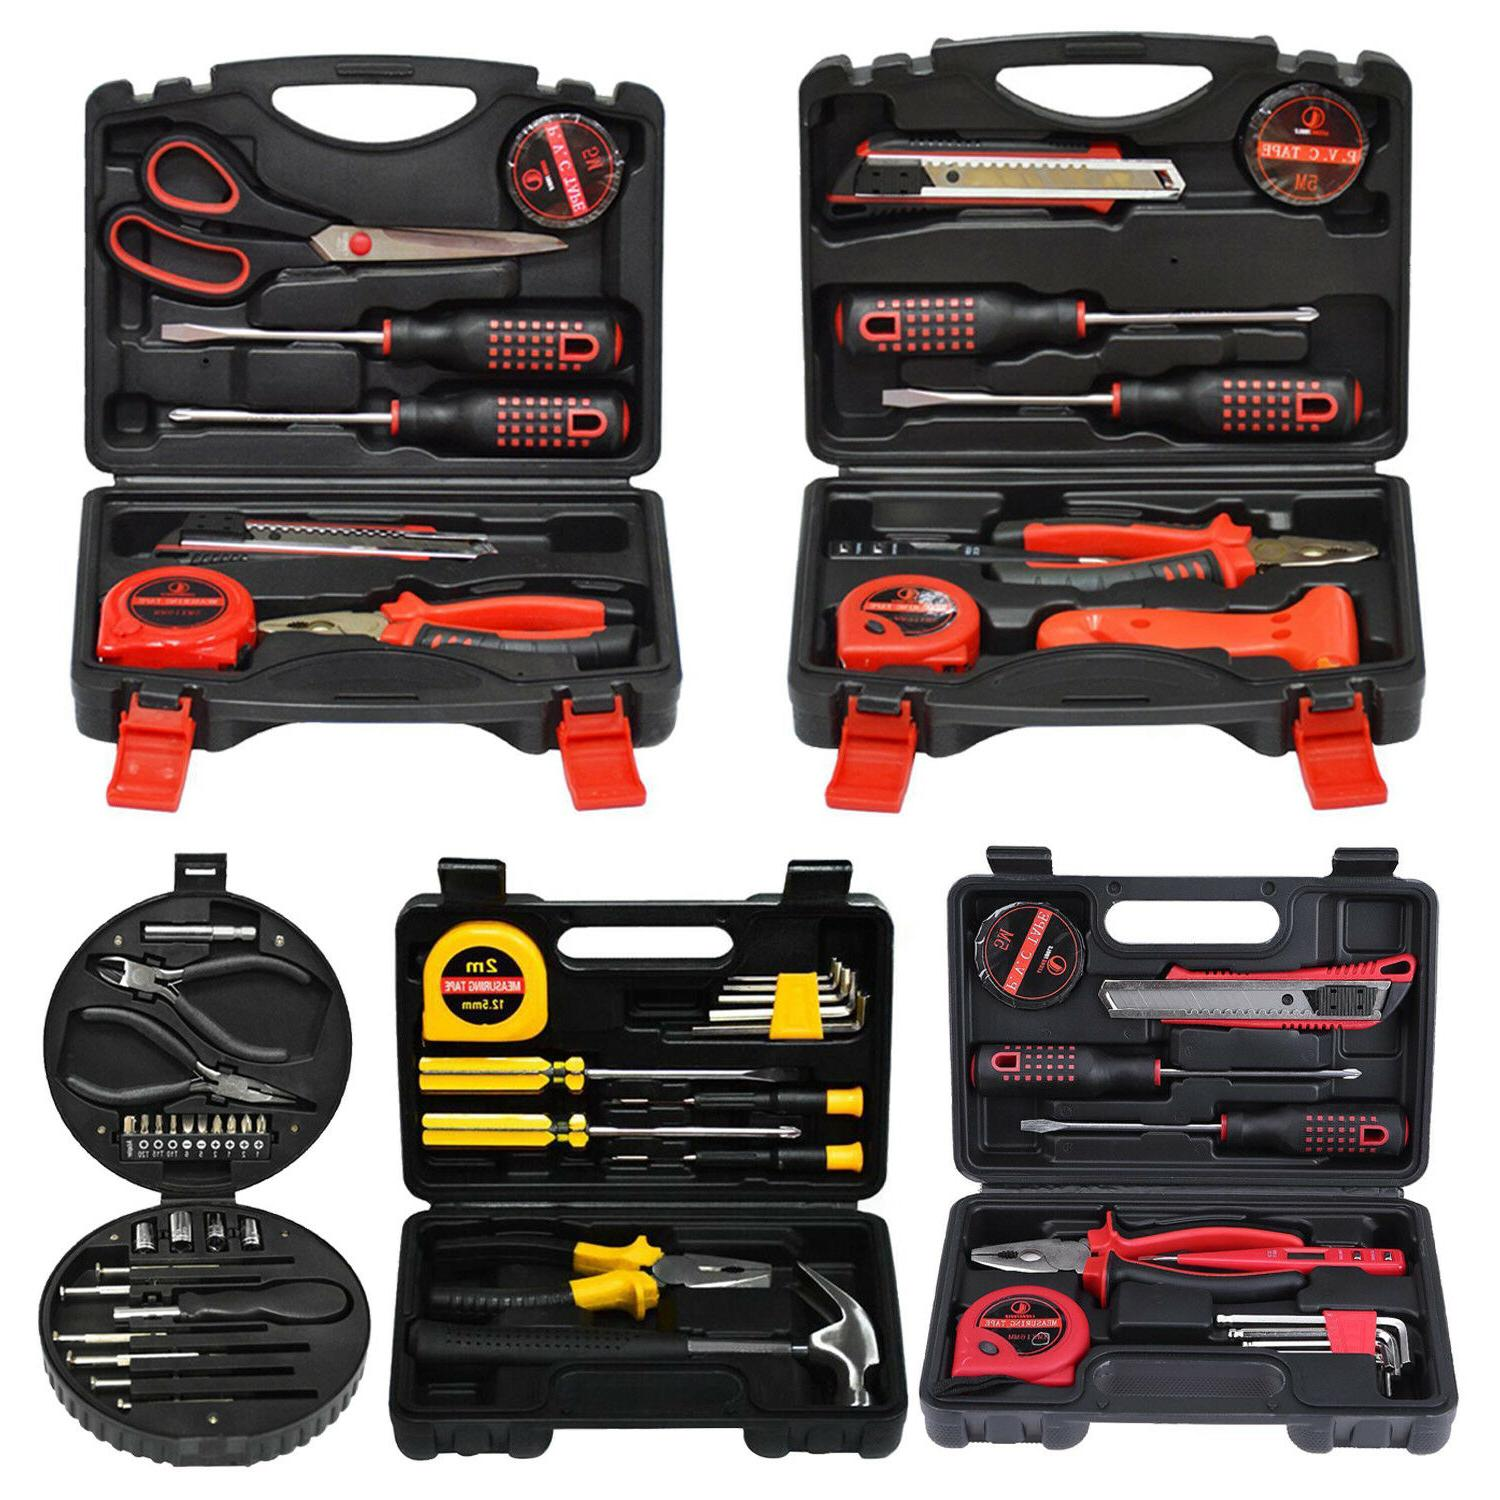 24 pcs Home Household Tool Set Steel Hand Tools Kit with Too